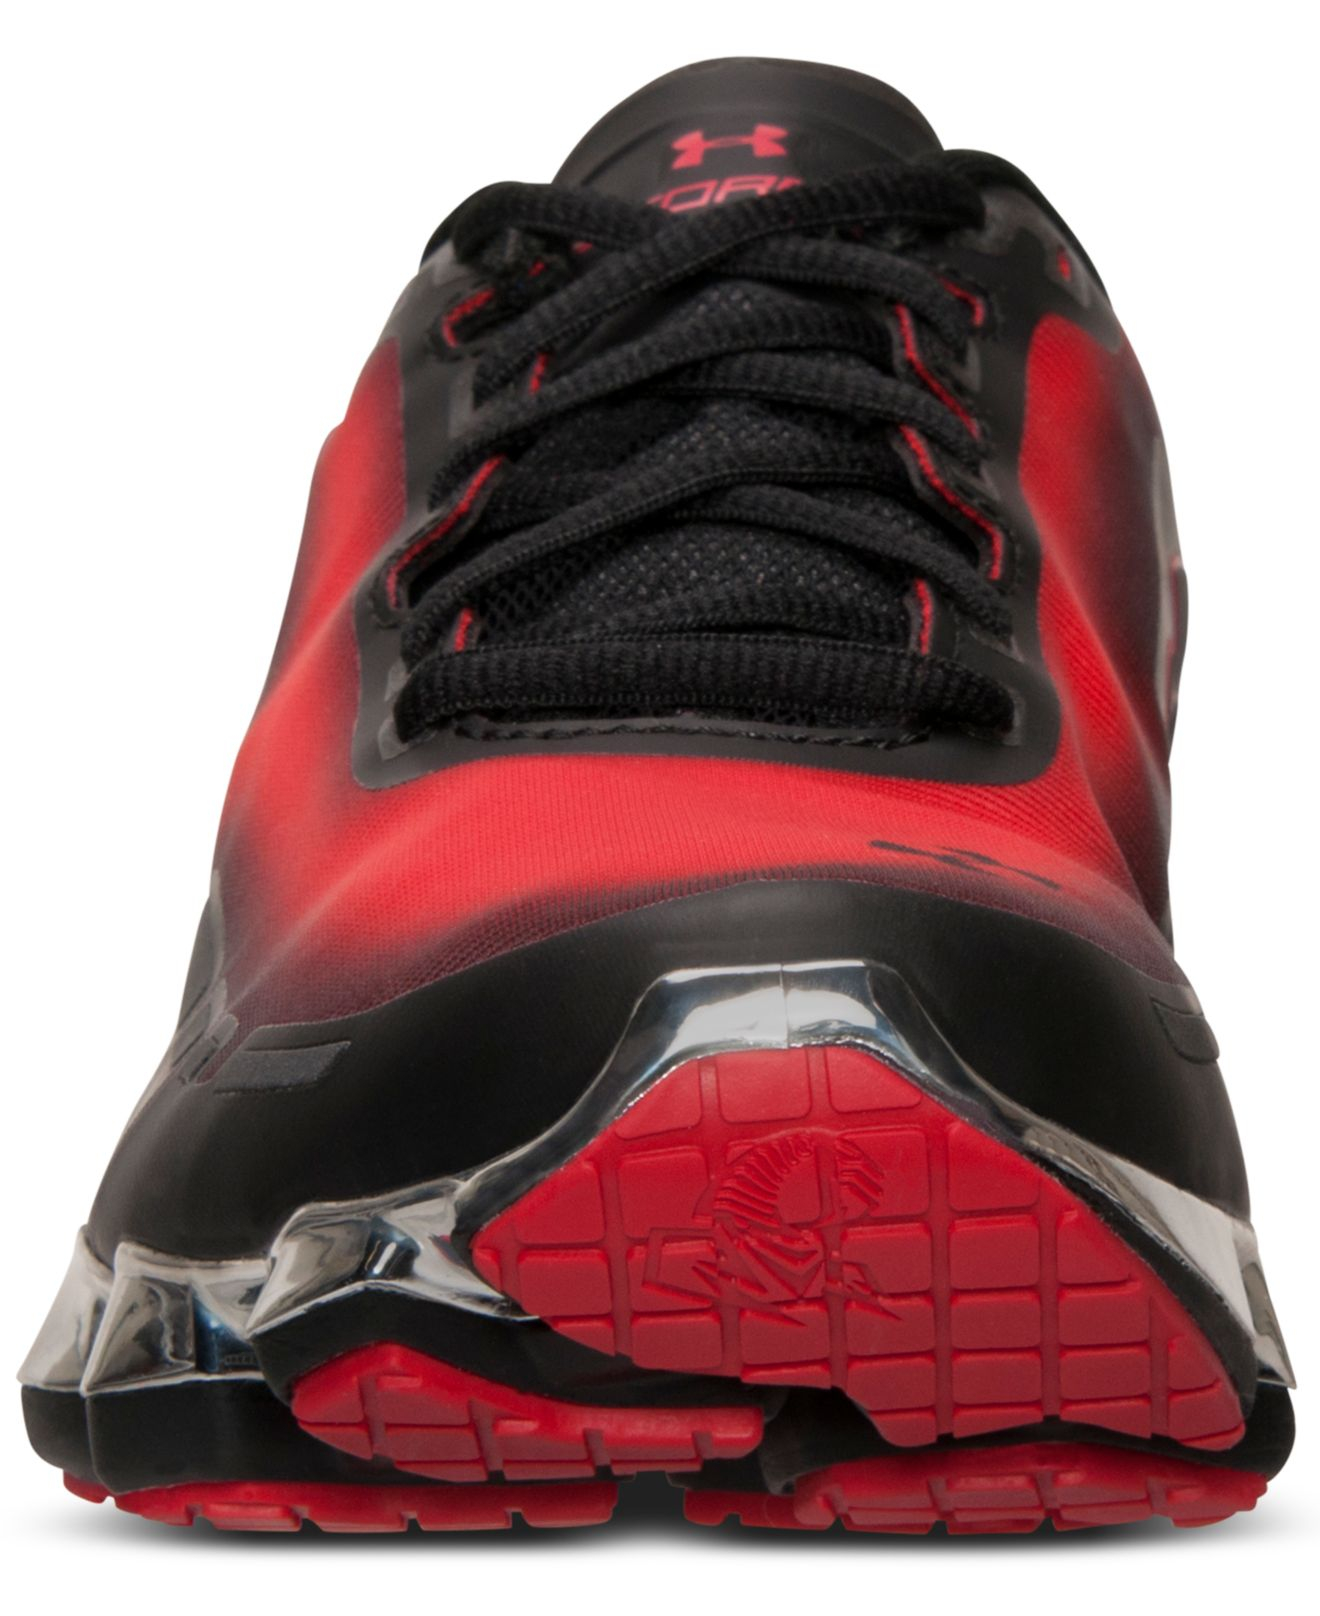 Lyst - Under Armour Men S Scorpio Chrome Running Sneakers From Finish Line  in Black for Men 92dea8265